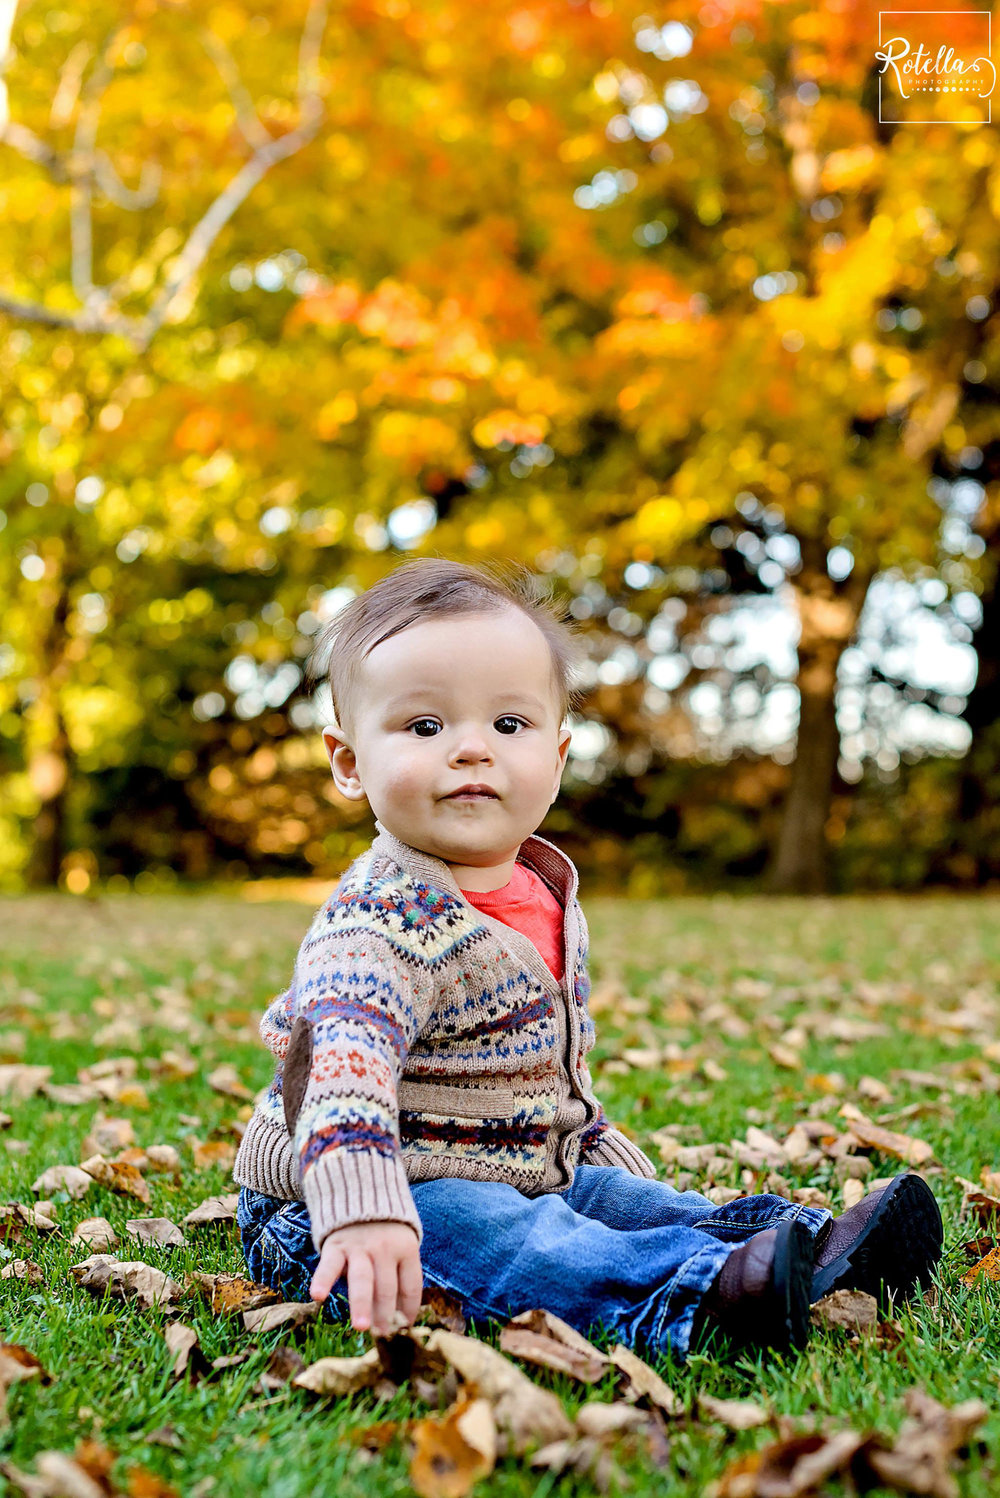 Rotella Photography - 6 month photos baby sitting outside